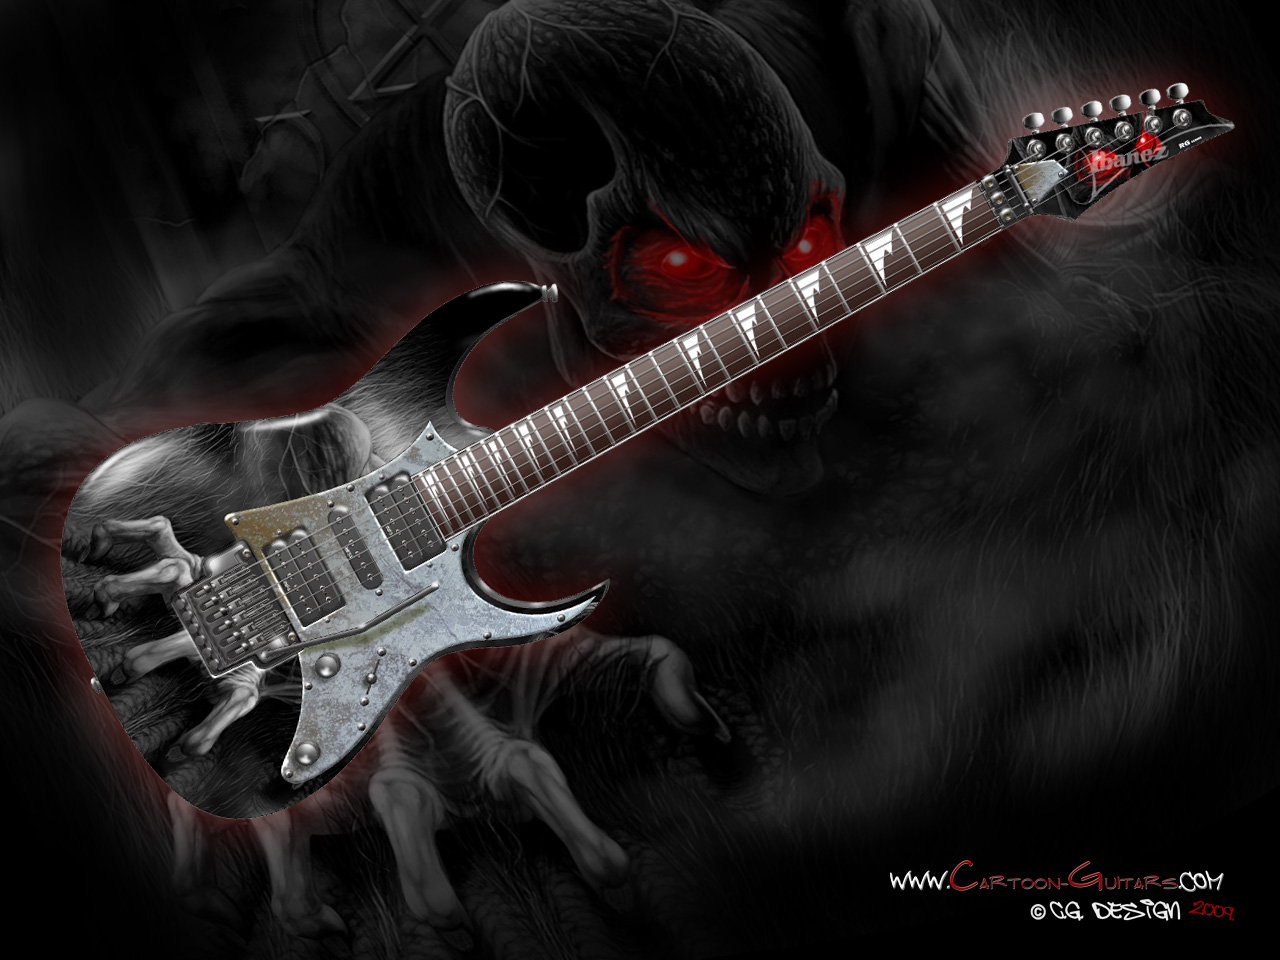 Random Wallpapers. ibanez-rg350-custom-wallpaper_20090401_2001860338.jpg